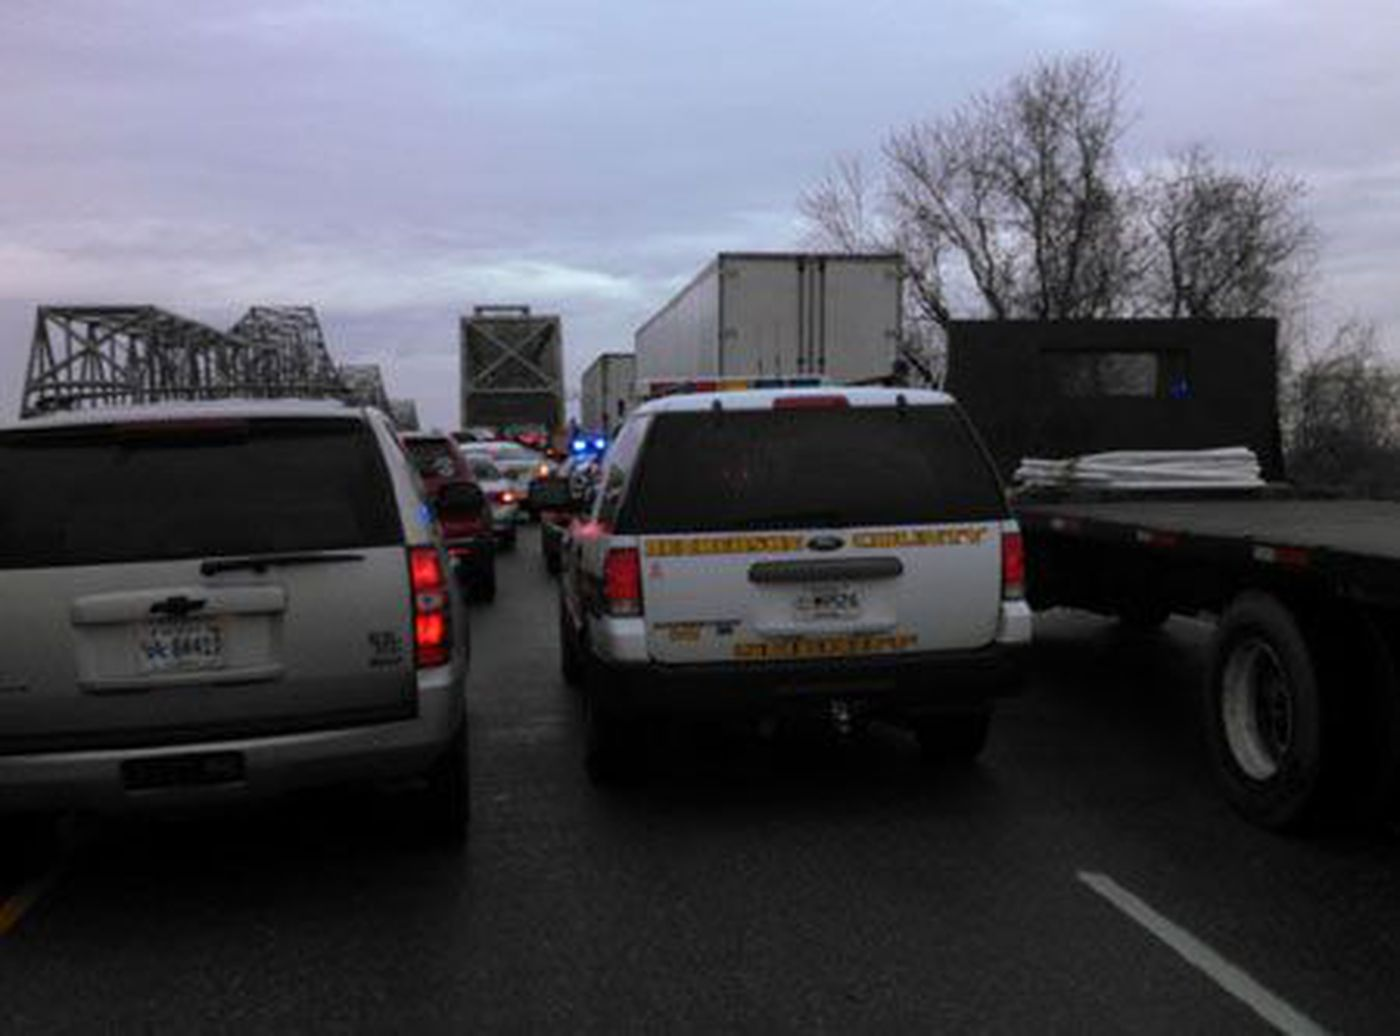 Accident On Hwy 41 Caused Major Delay Twin Bridges In Car Lights